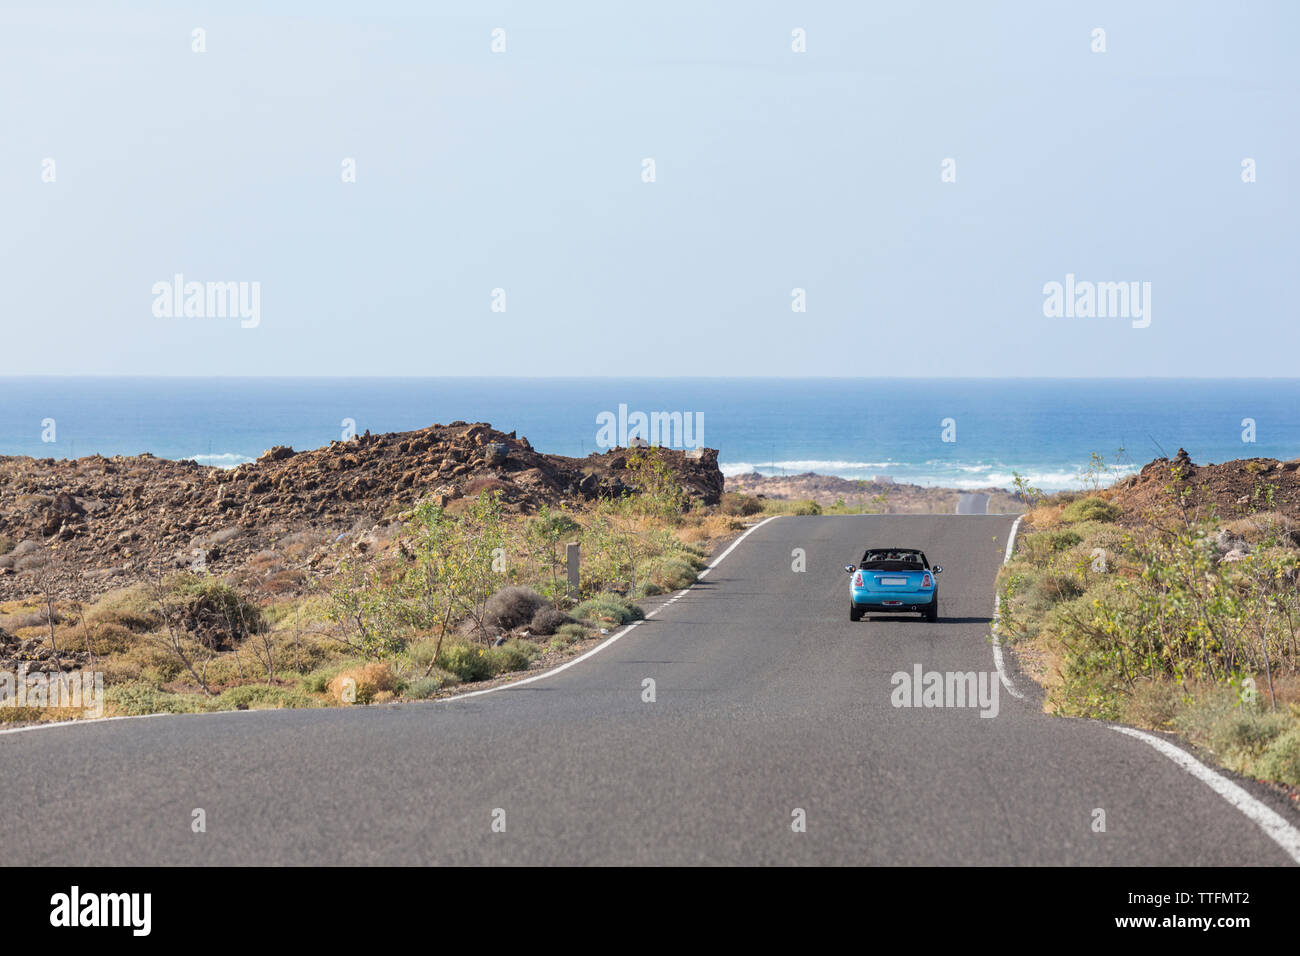 Blue cabrio car driving in empty paved road towards the ocean - Stock Image